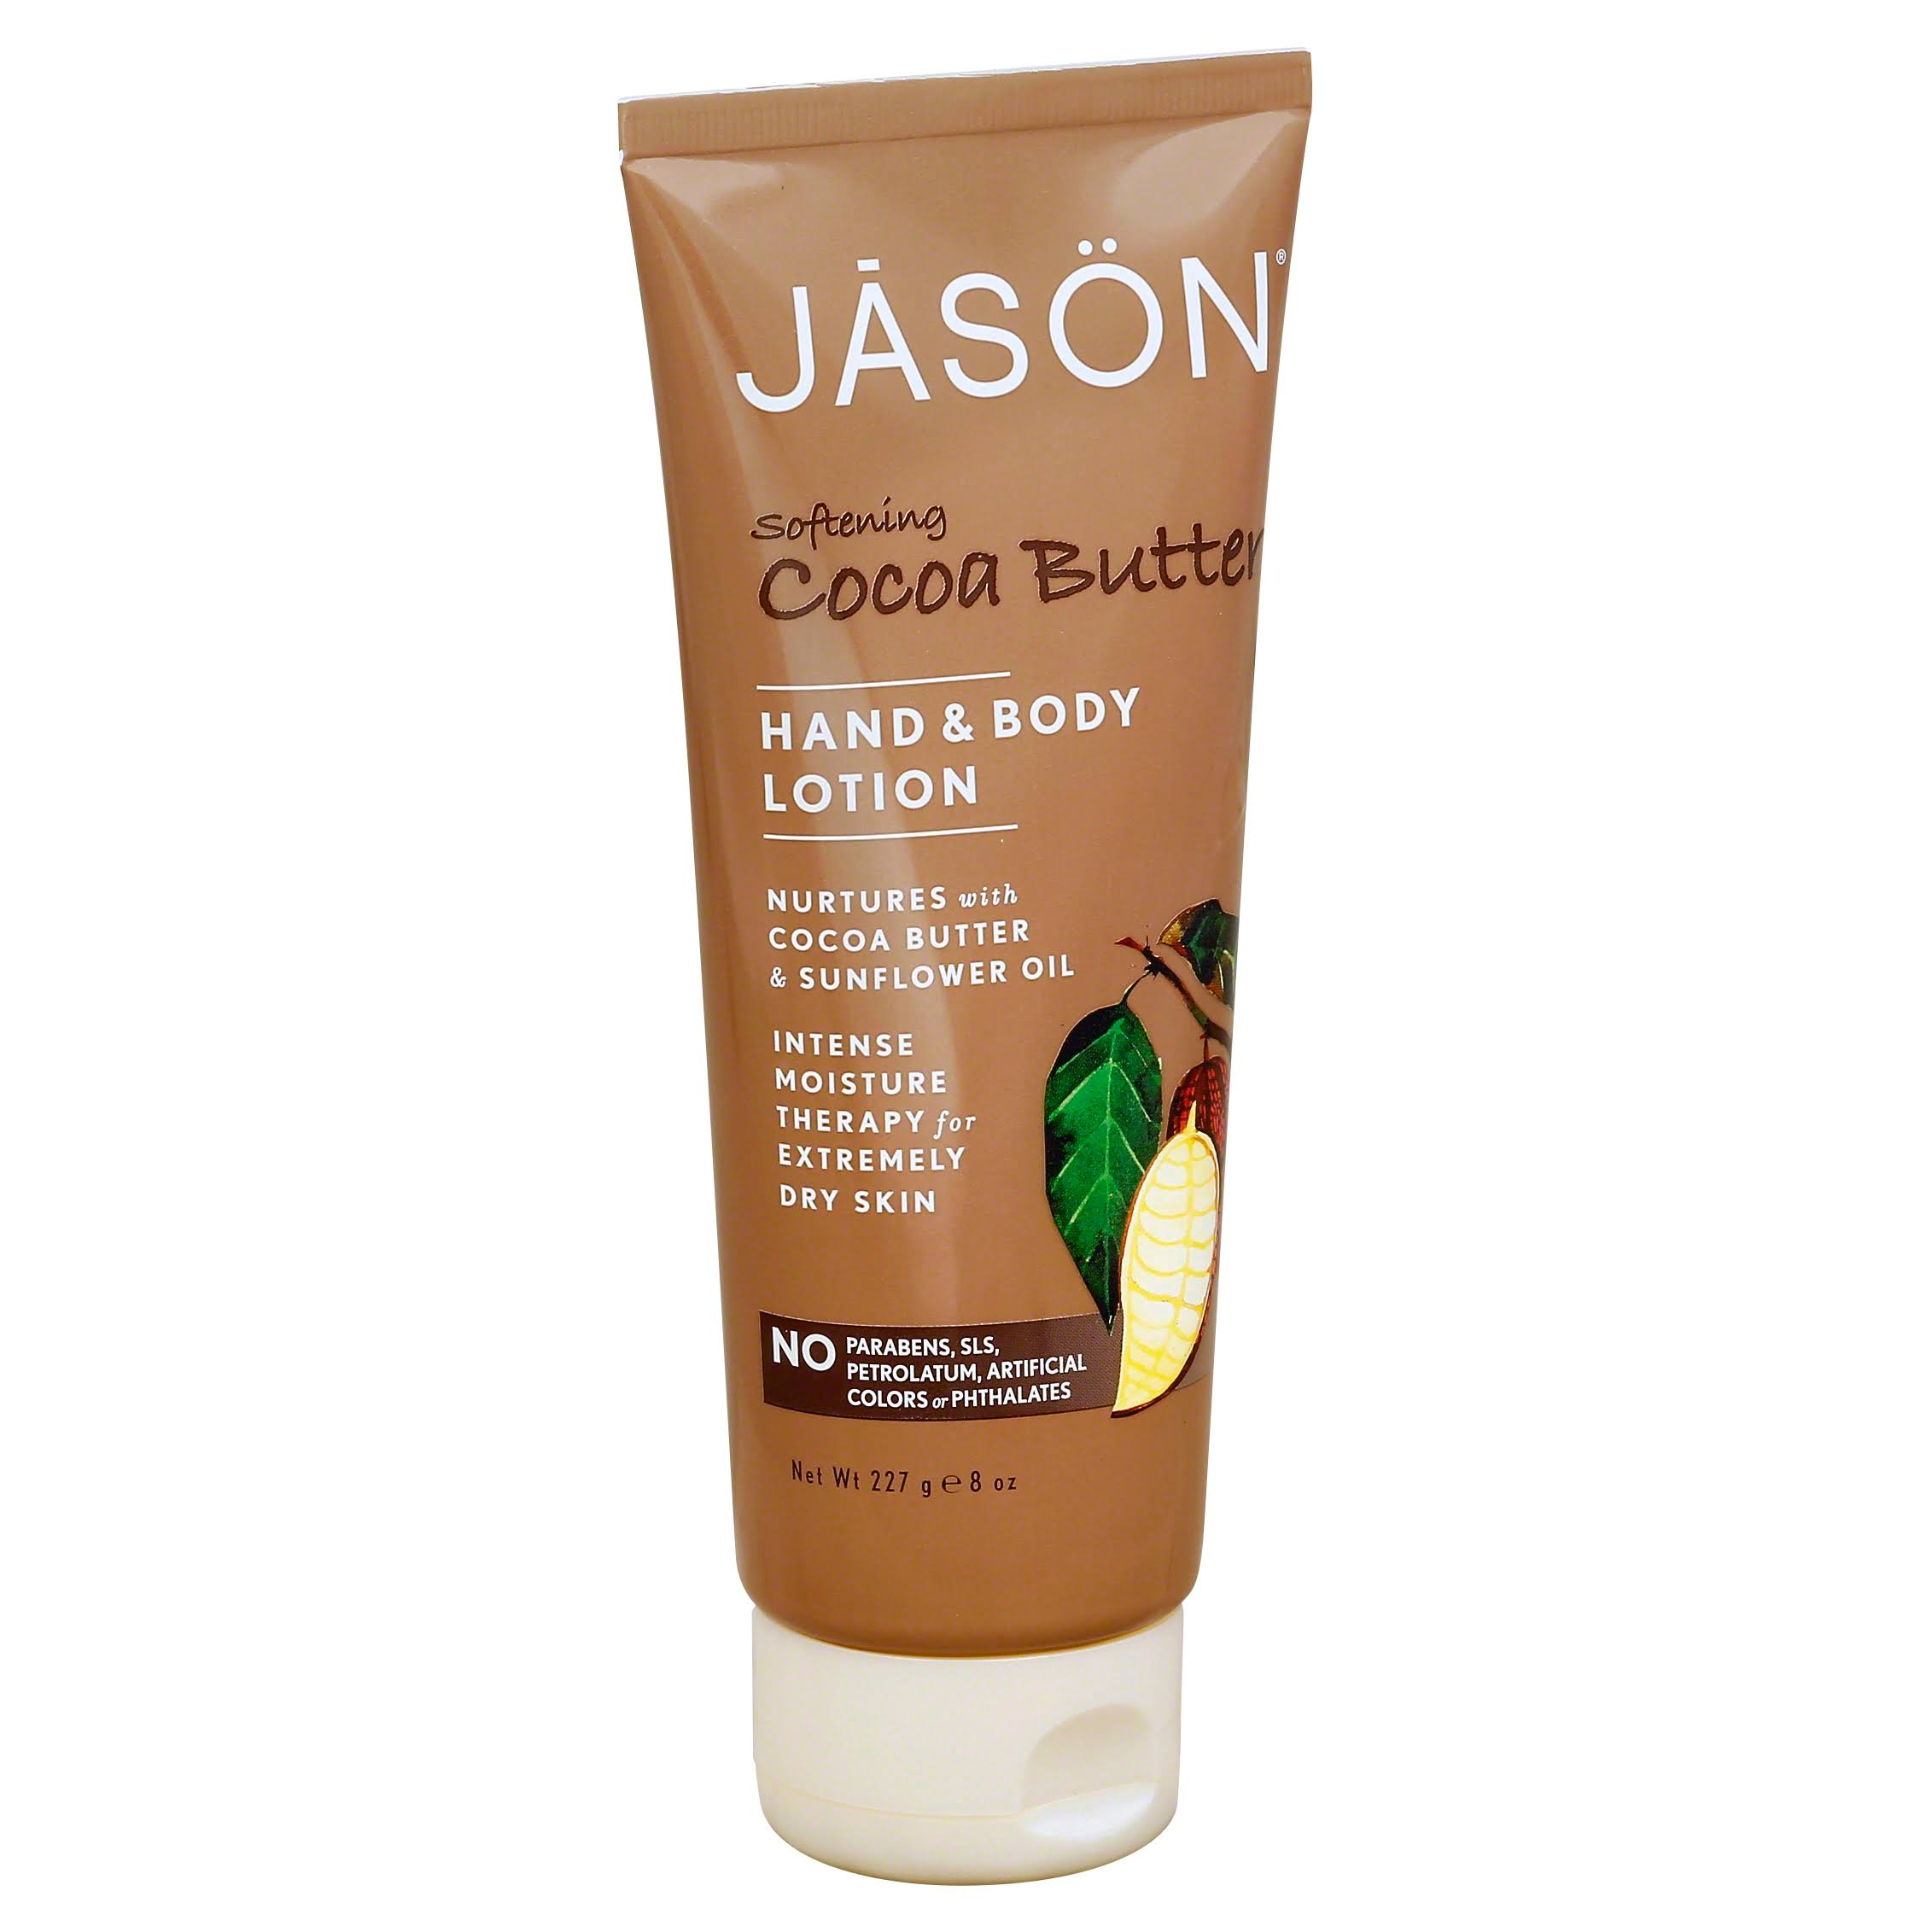 Jason Hand & Body Lotion - Cocoa Butter